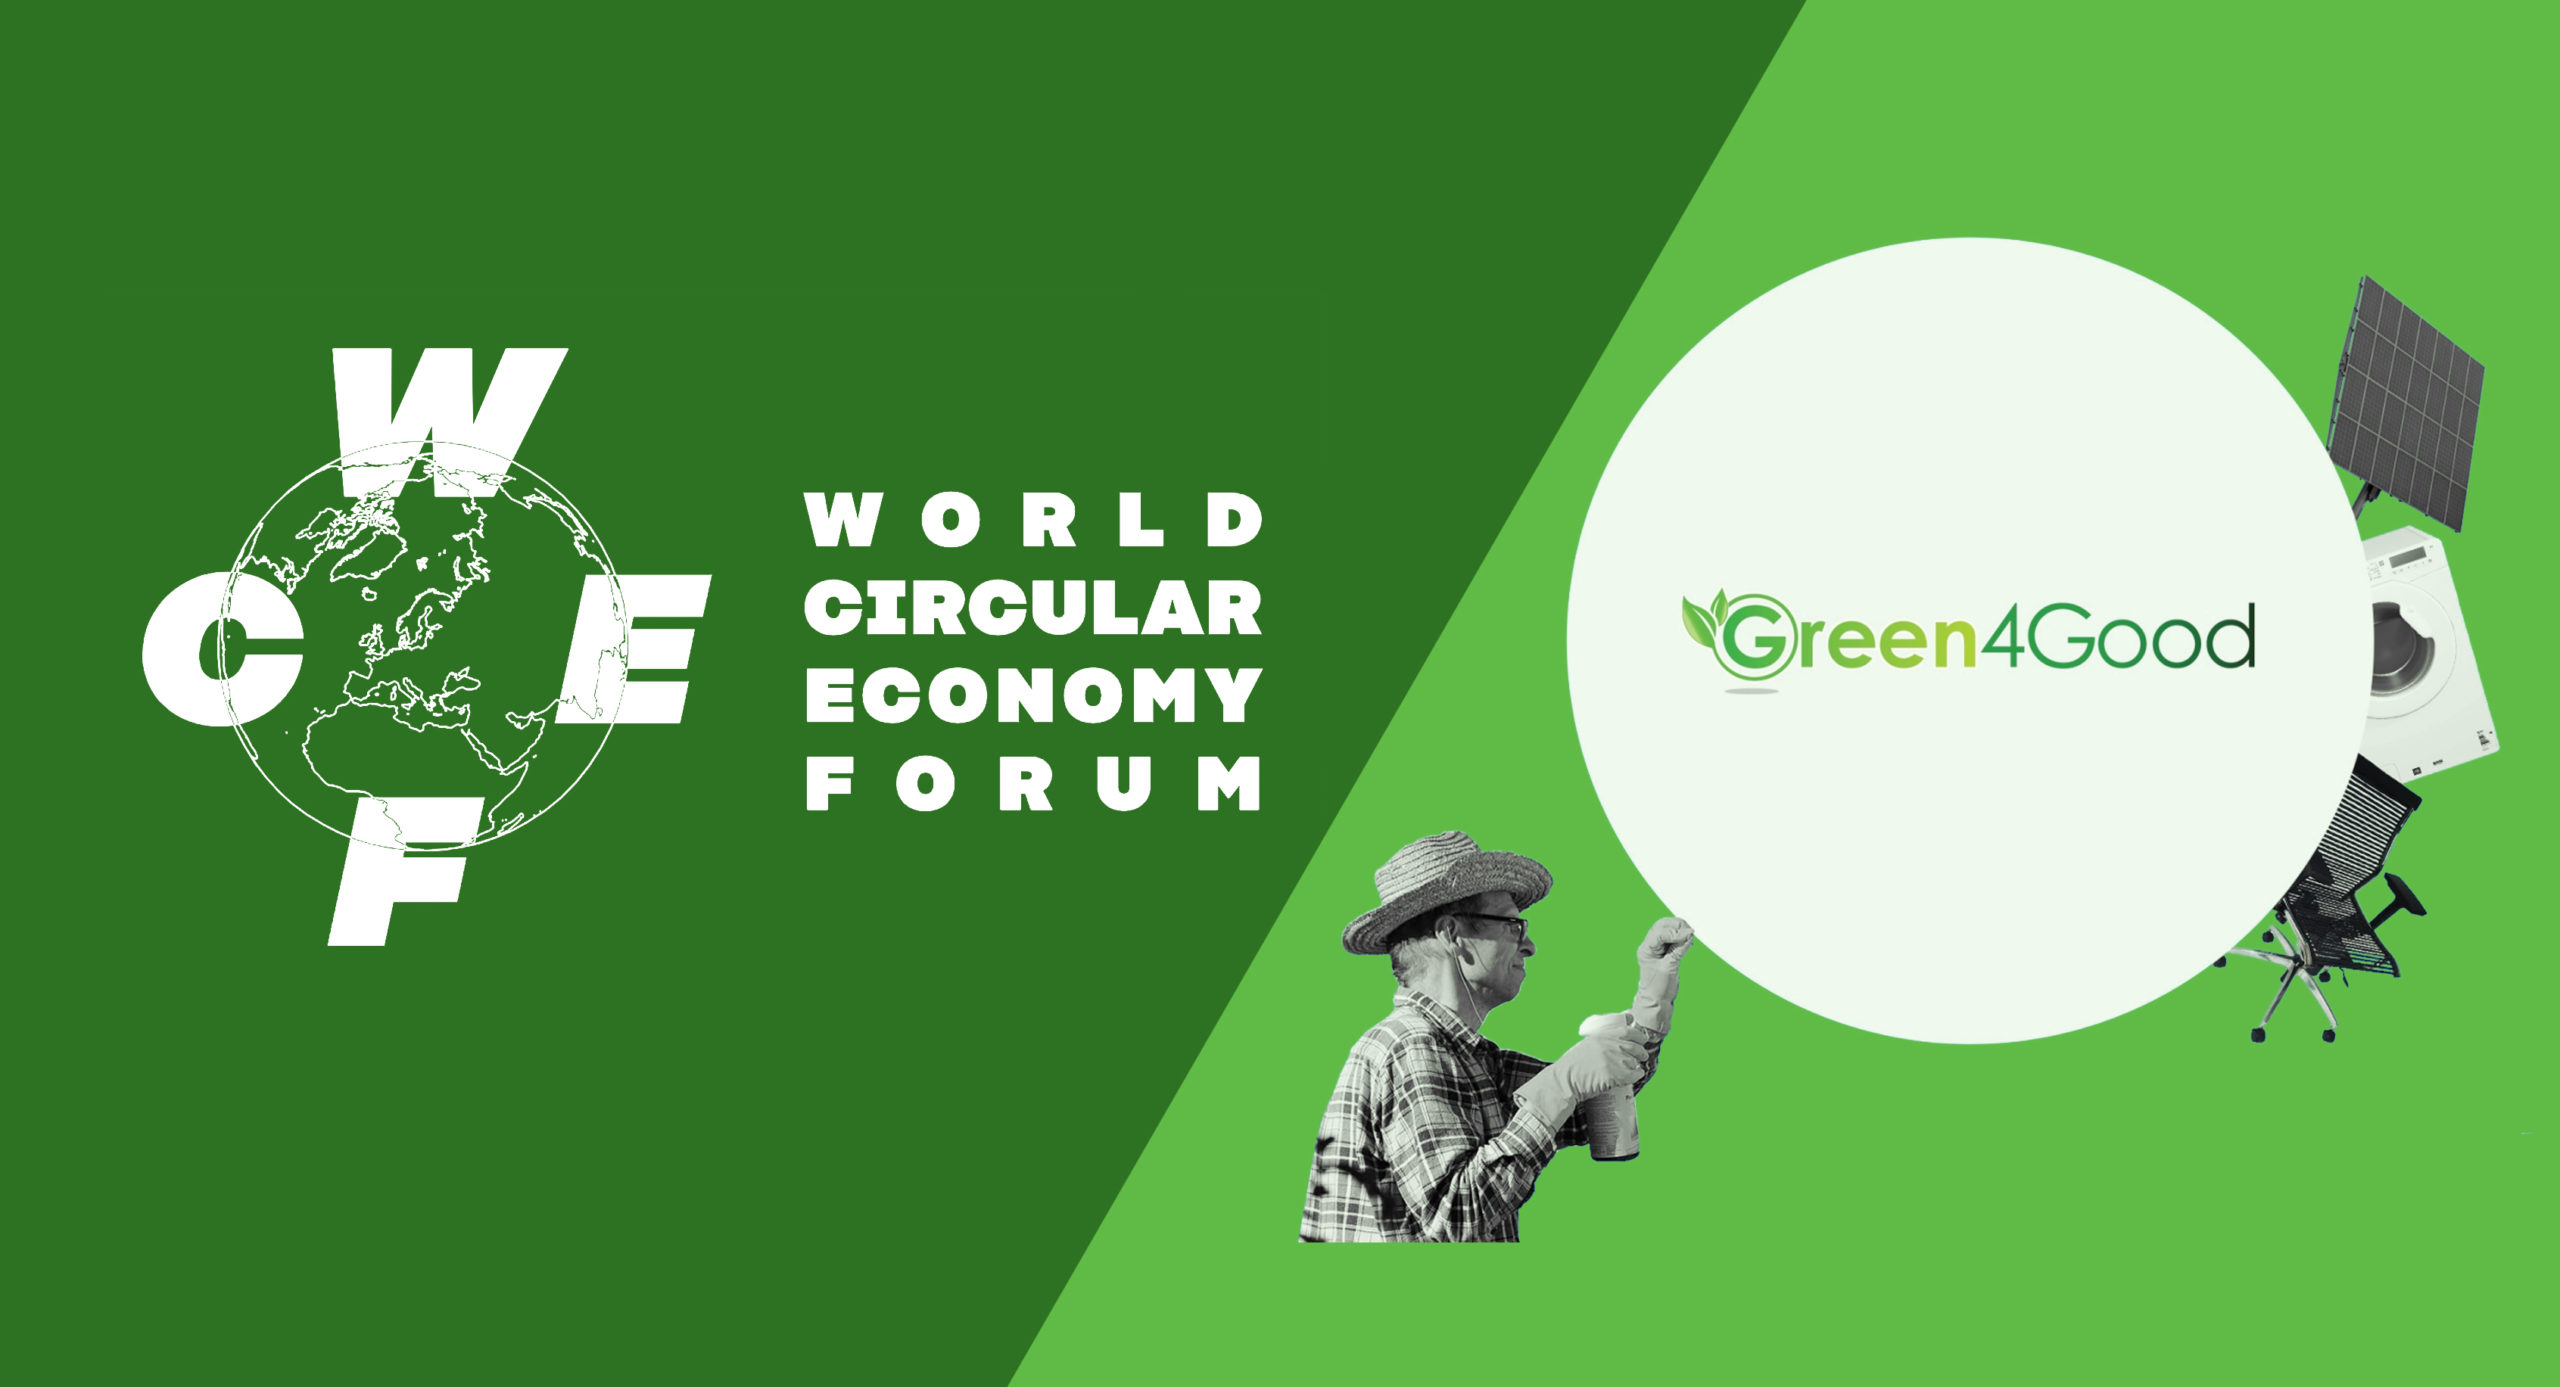 Green4Good program recognized in the World Circular Economy Forum's list of inspiring solutions from around the world